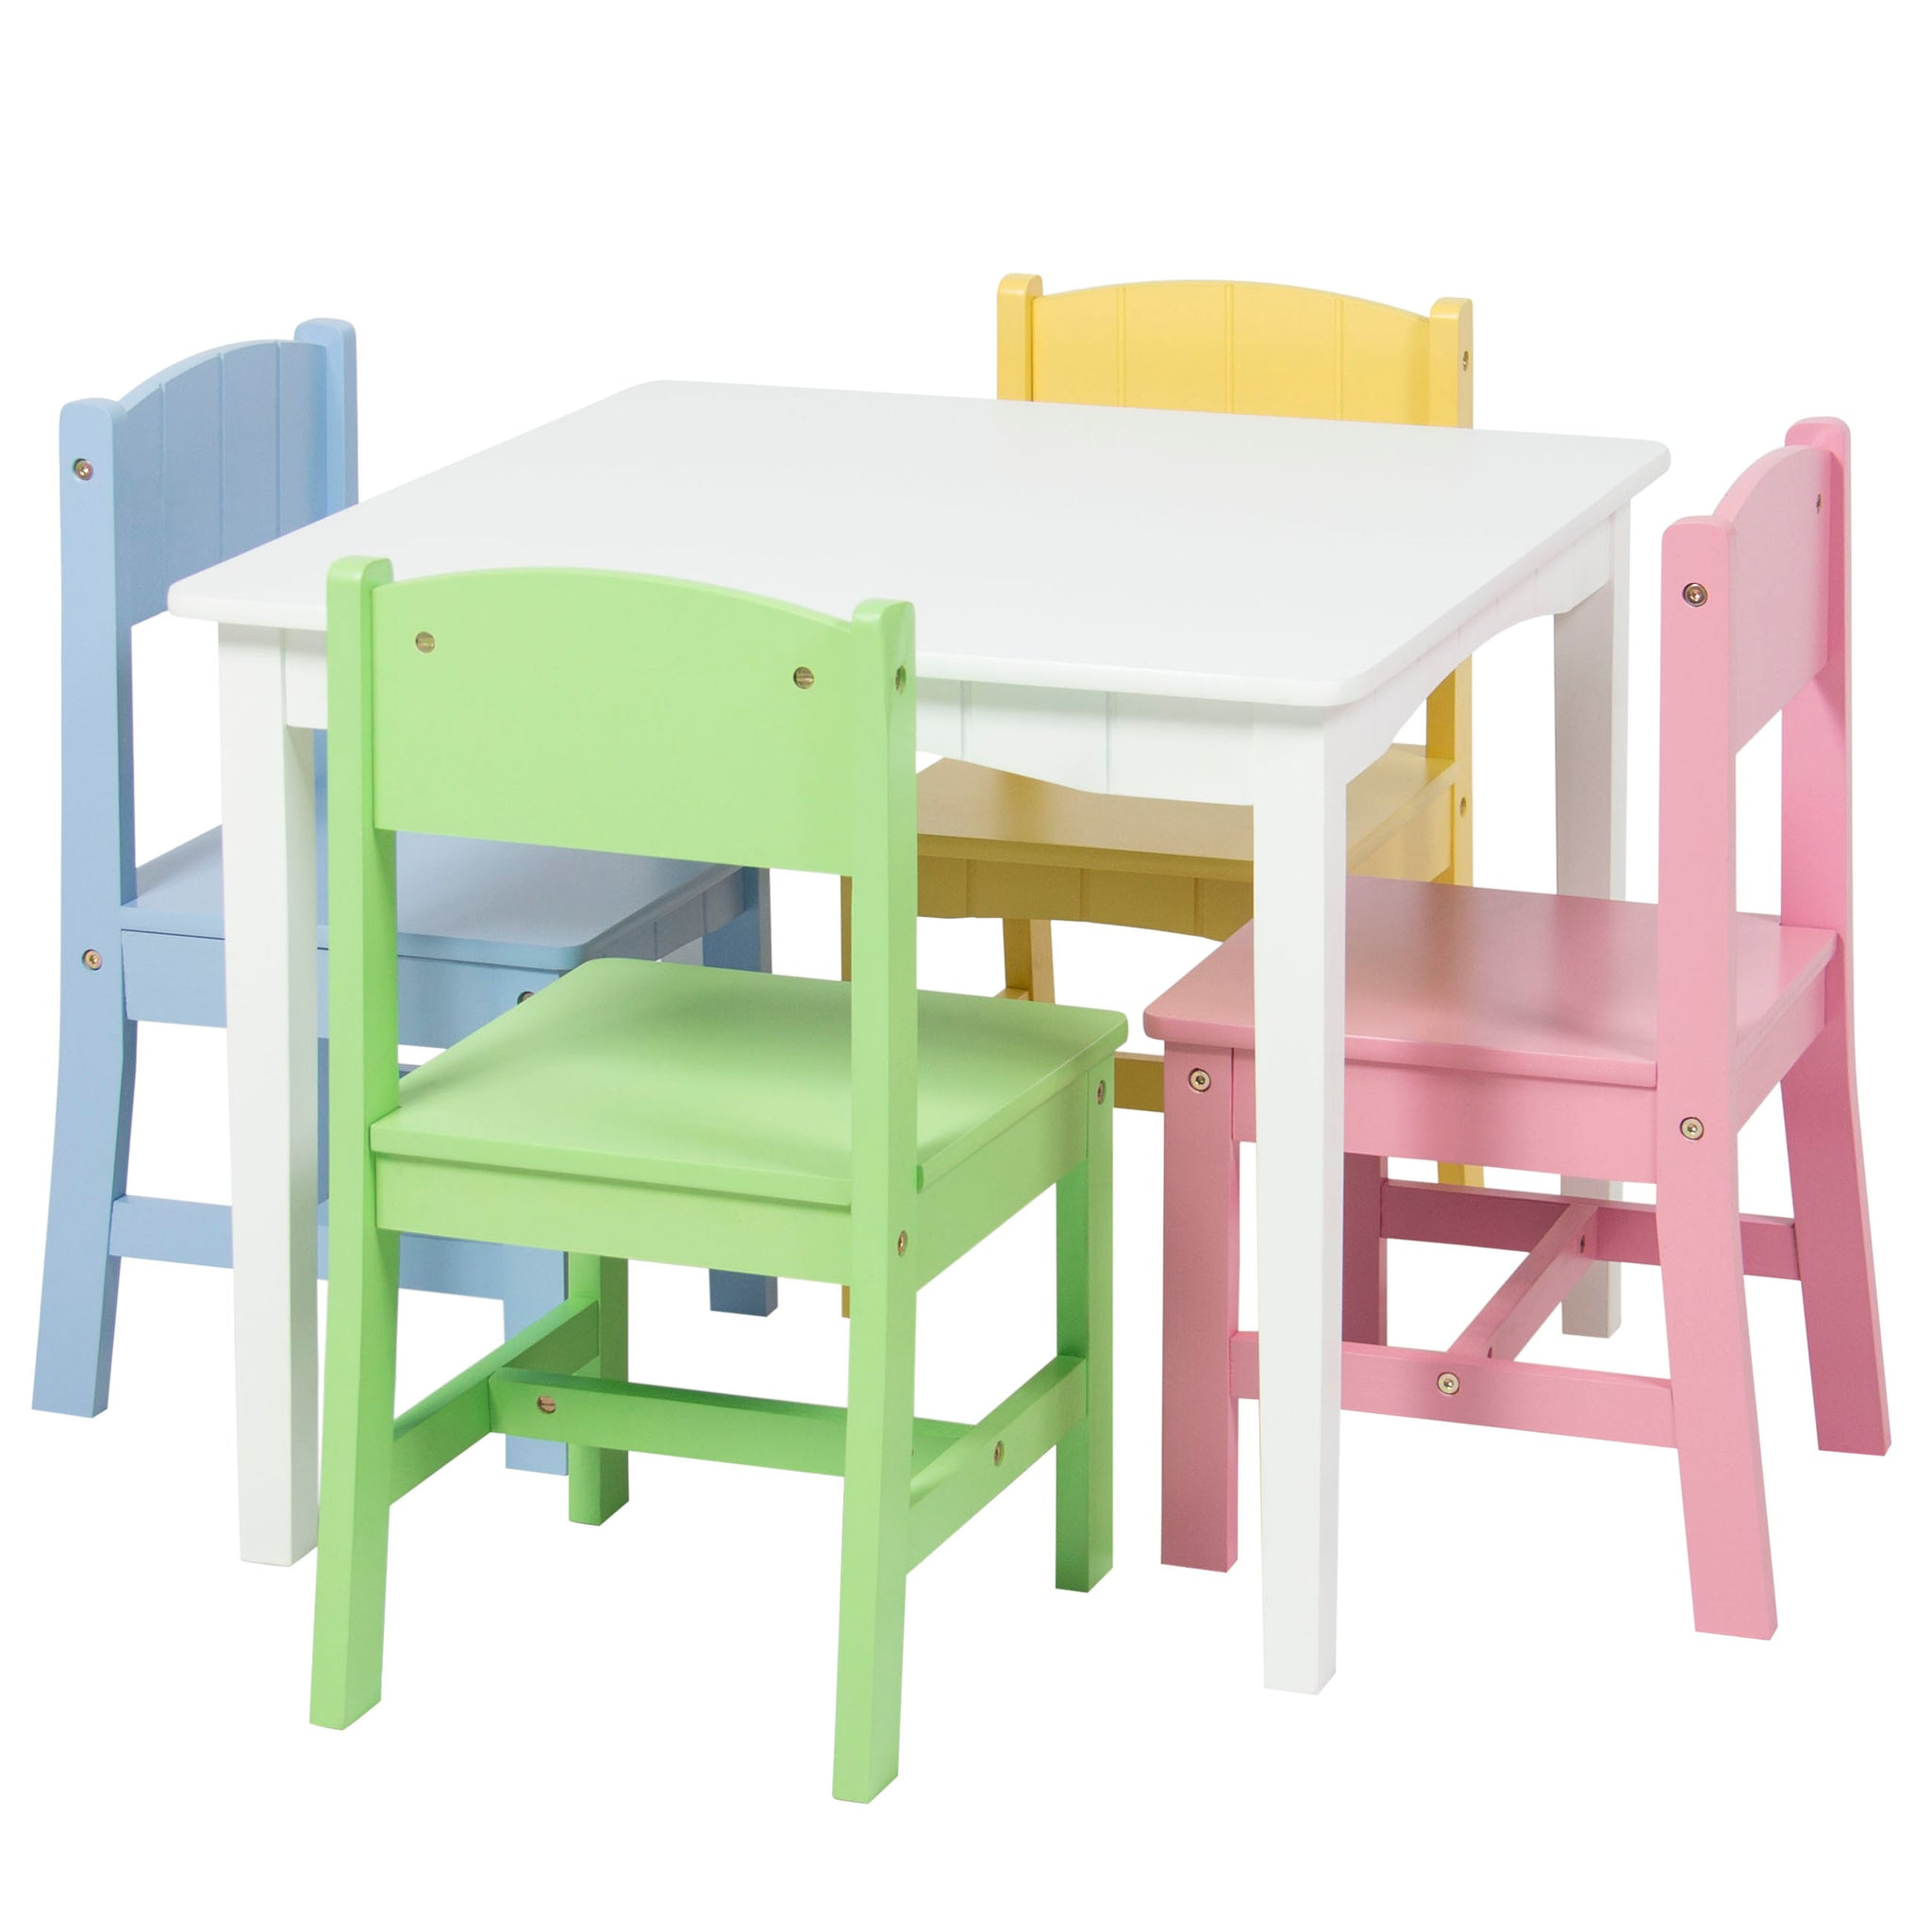 Kids Wooden Table Set W/ 4 Chairs   Pastel/Multicolor